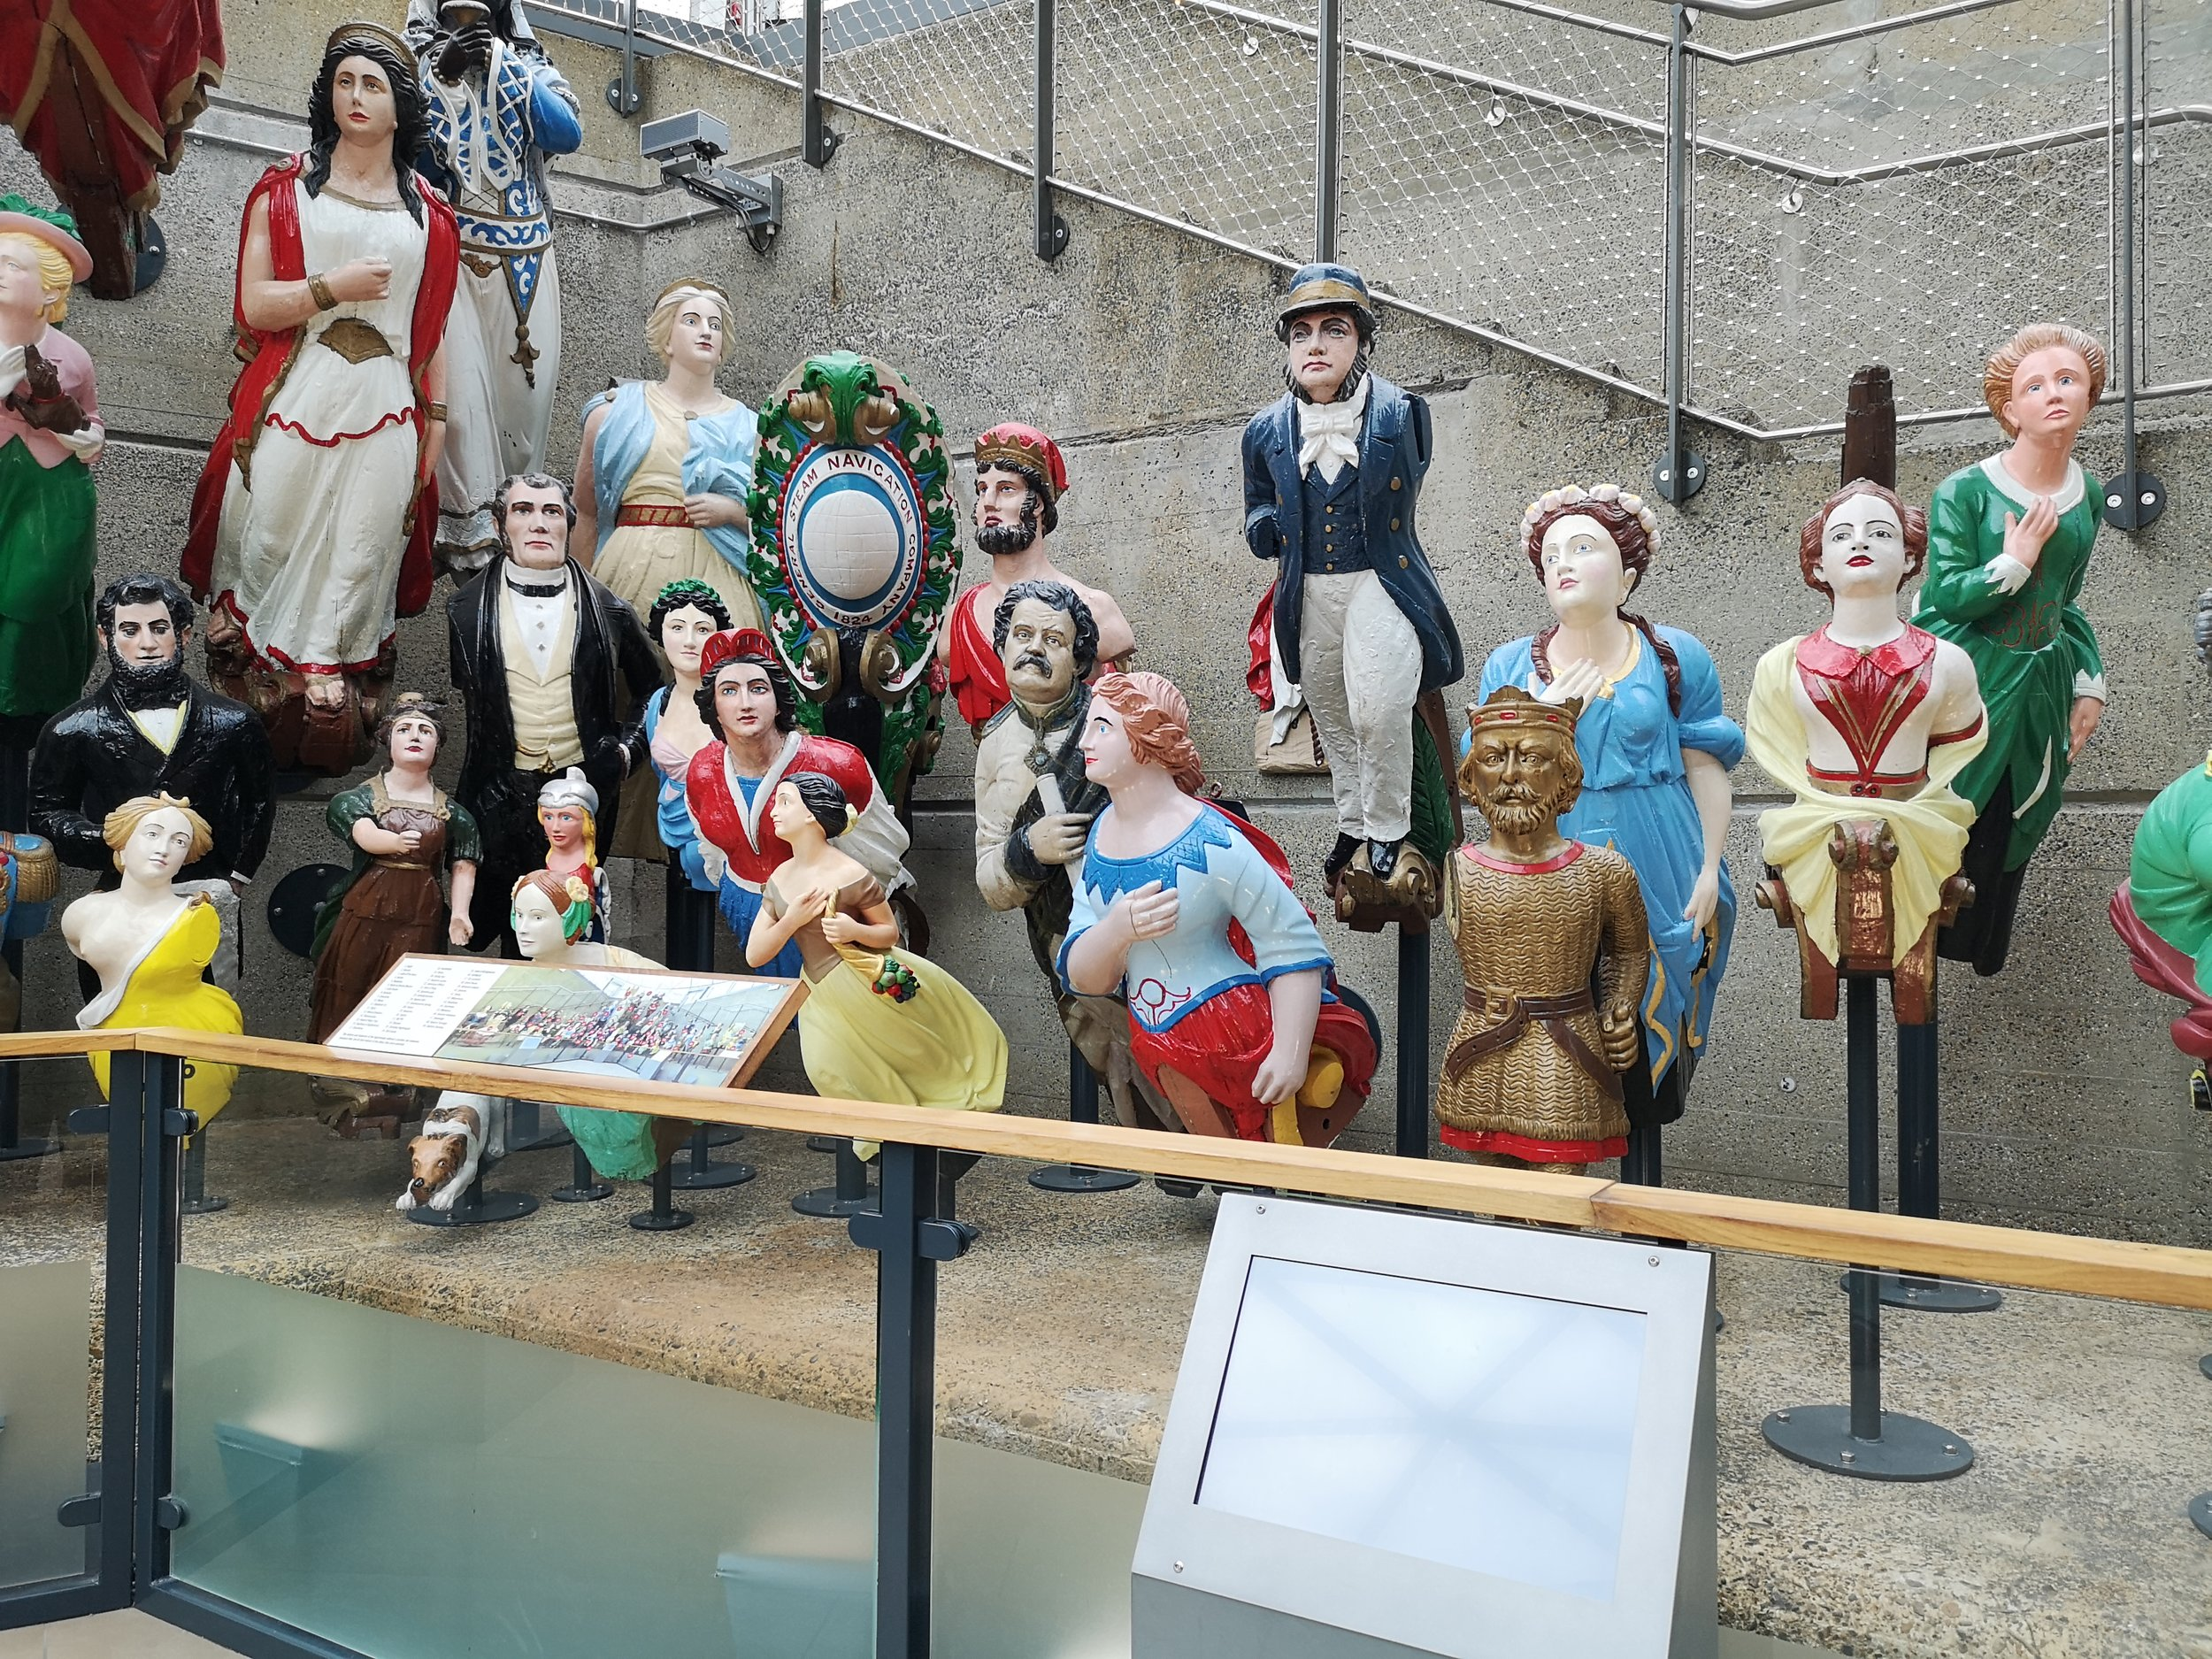 A display of figureheads at the Cutty Sark museum, Greenwich.